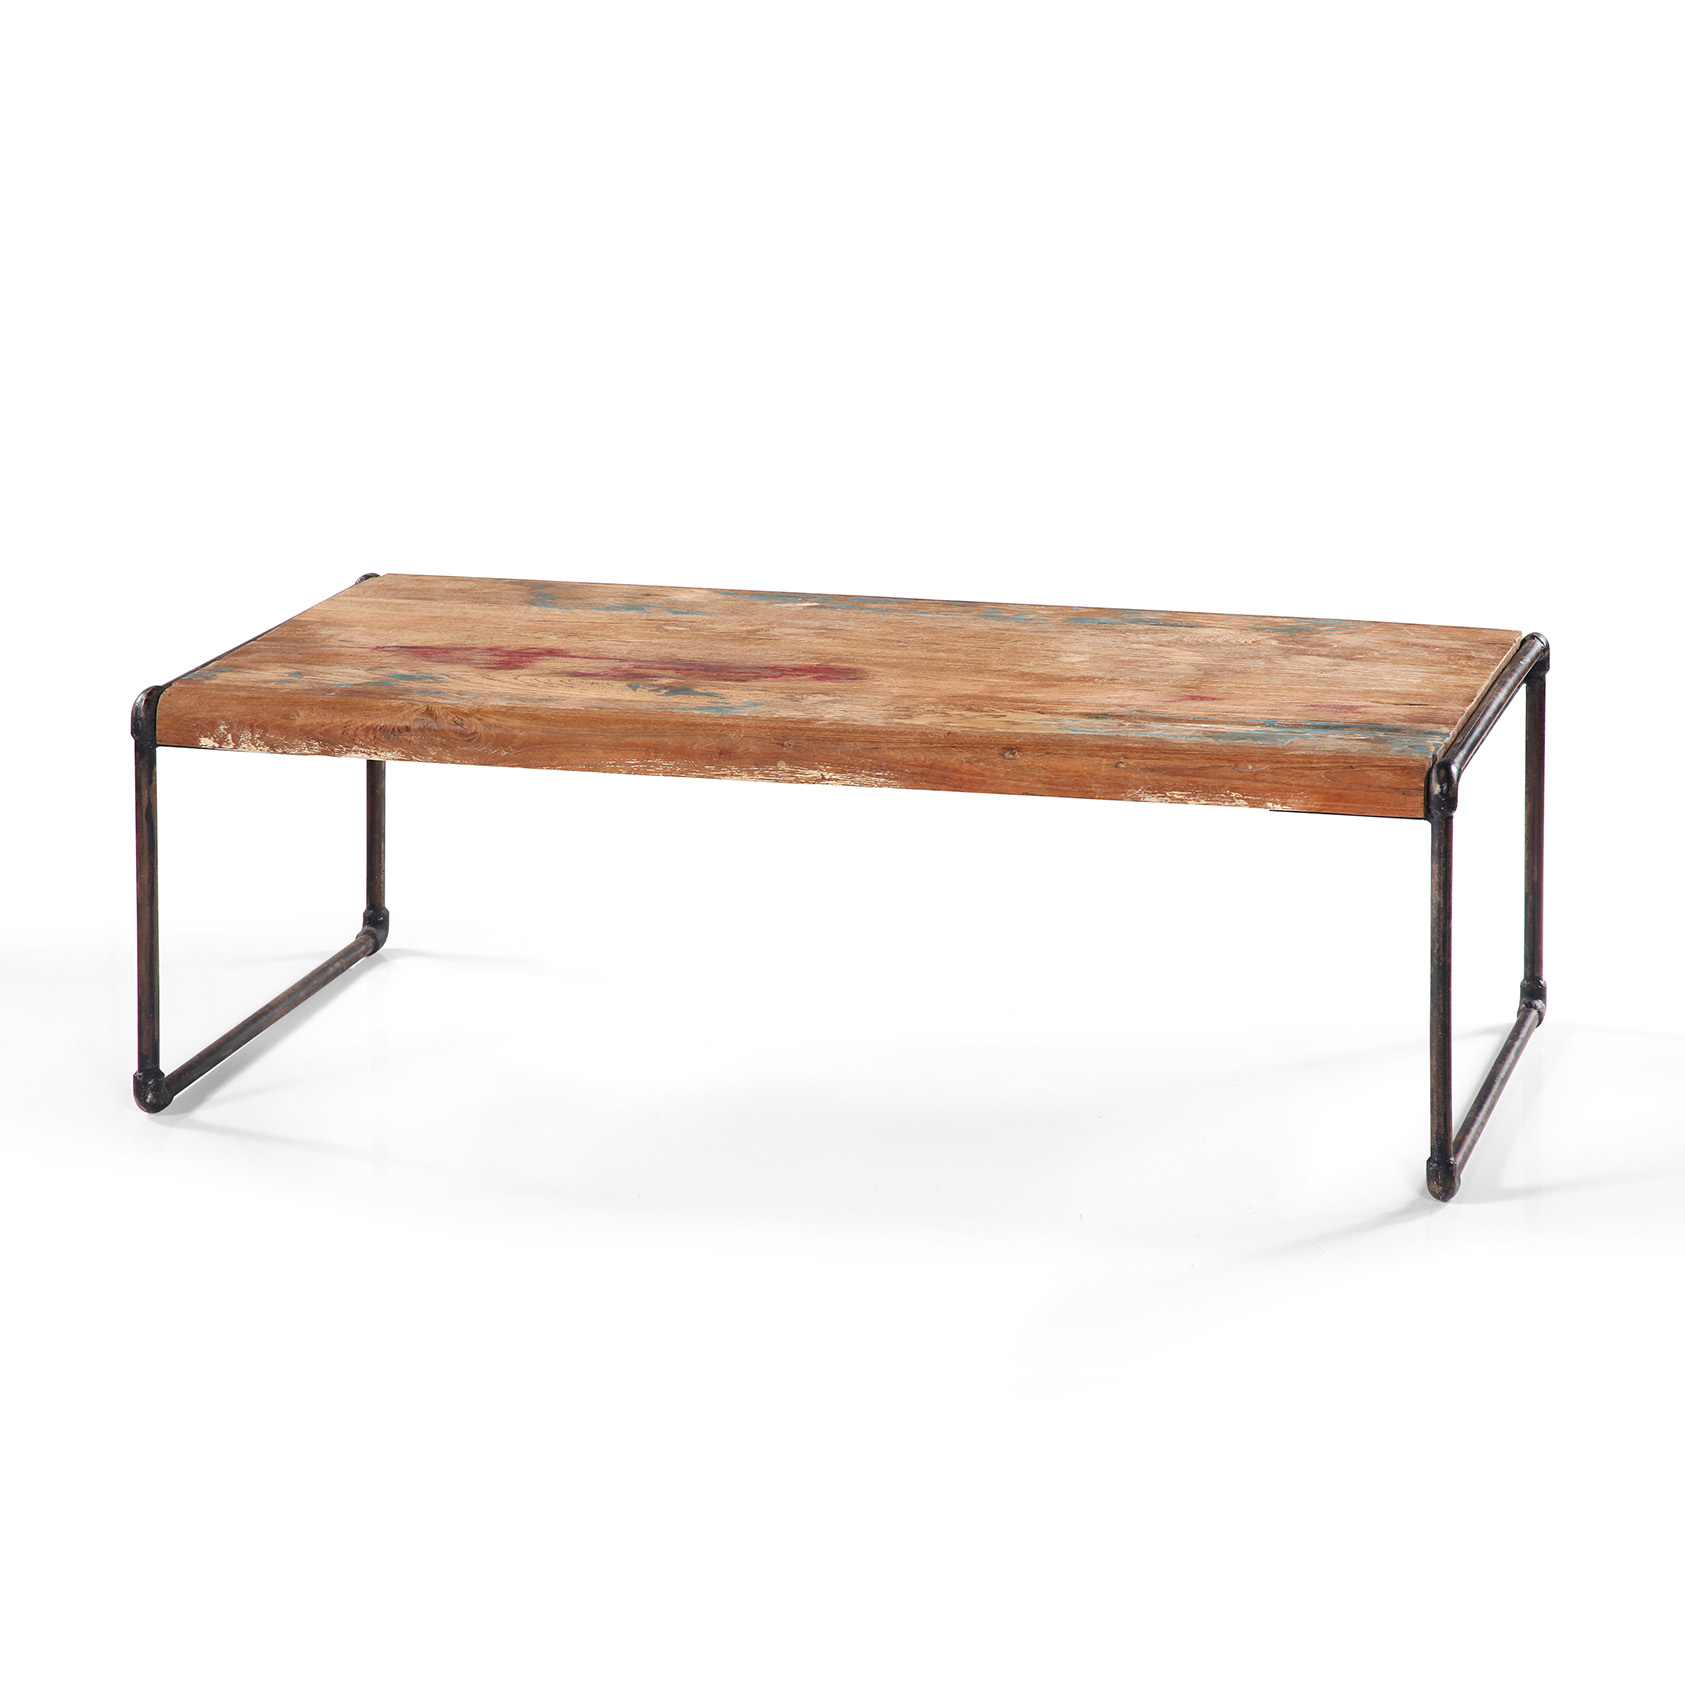 Table basse rectangulaire en teck massif recycl lombock - Table basse teck massif ...